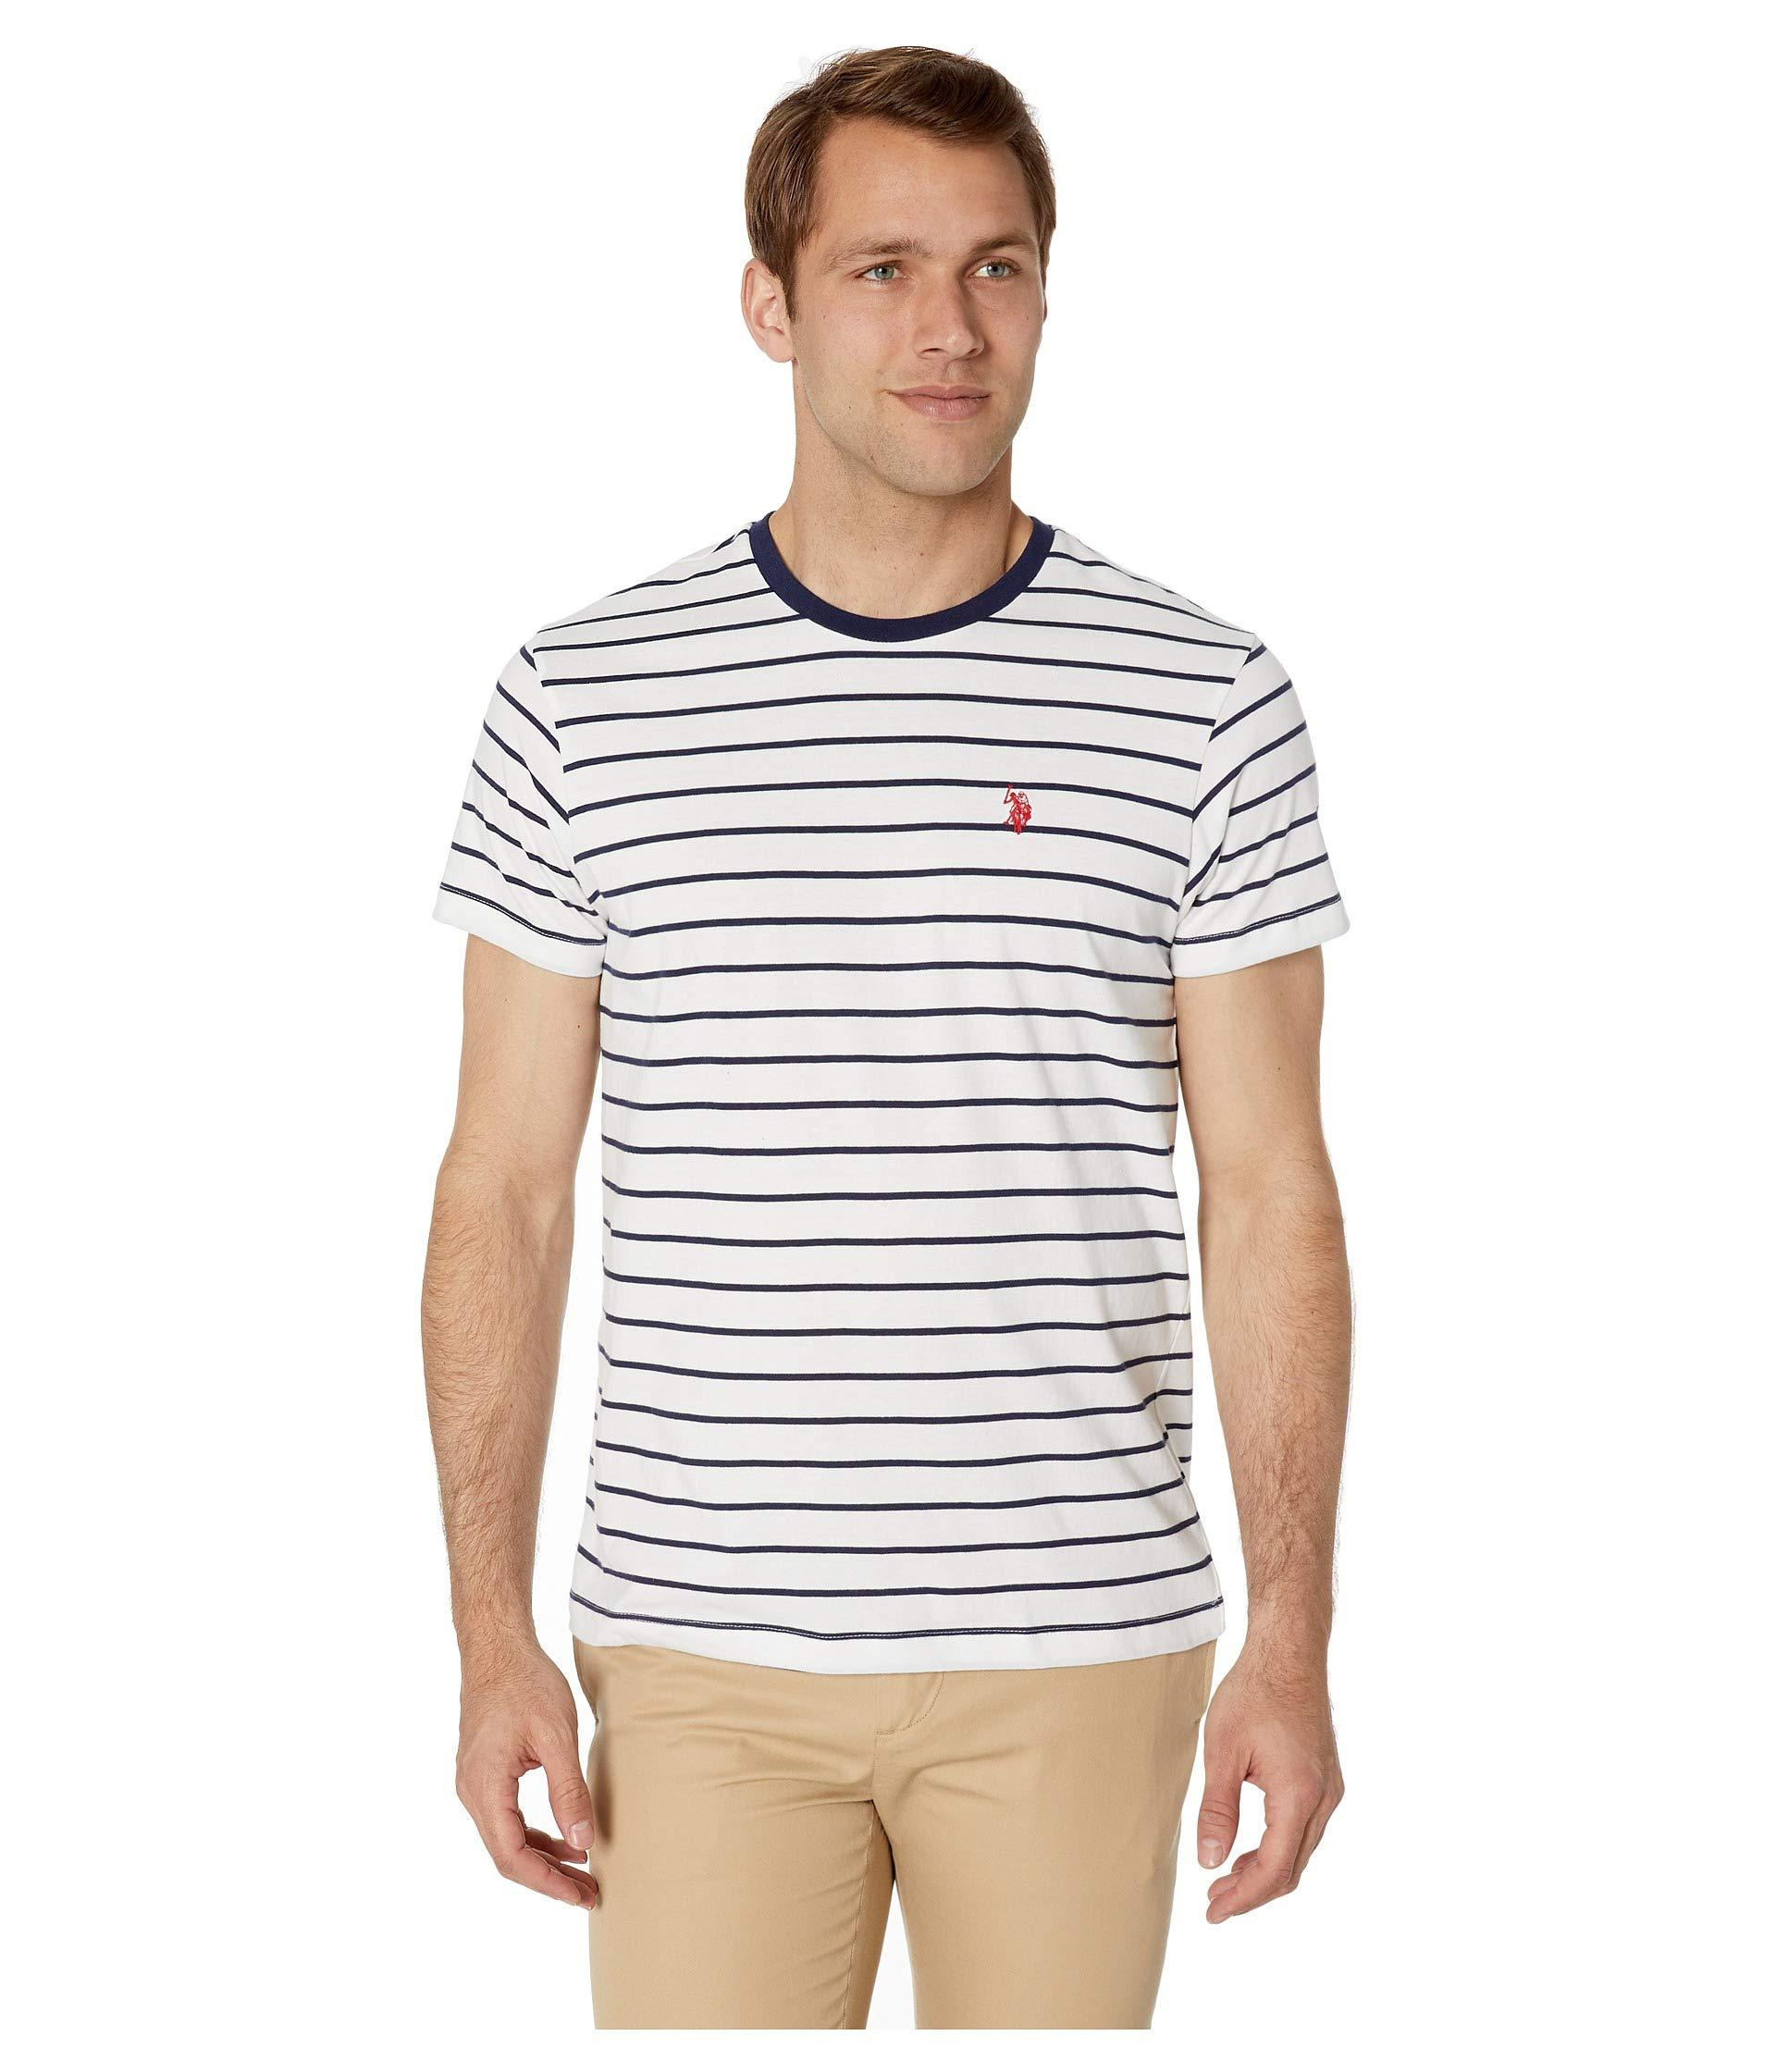 1511438a5 Lyst - U.S. POLO ASSN. Thin Stripe Crew Neck Tee in White for Men